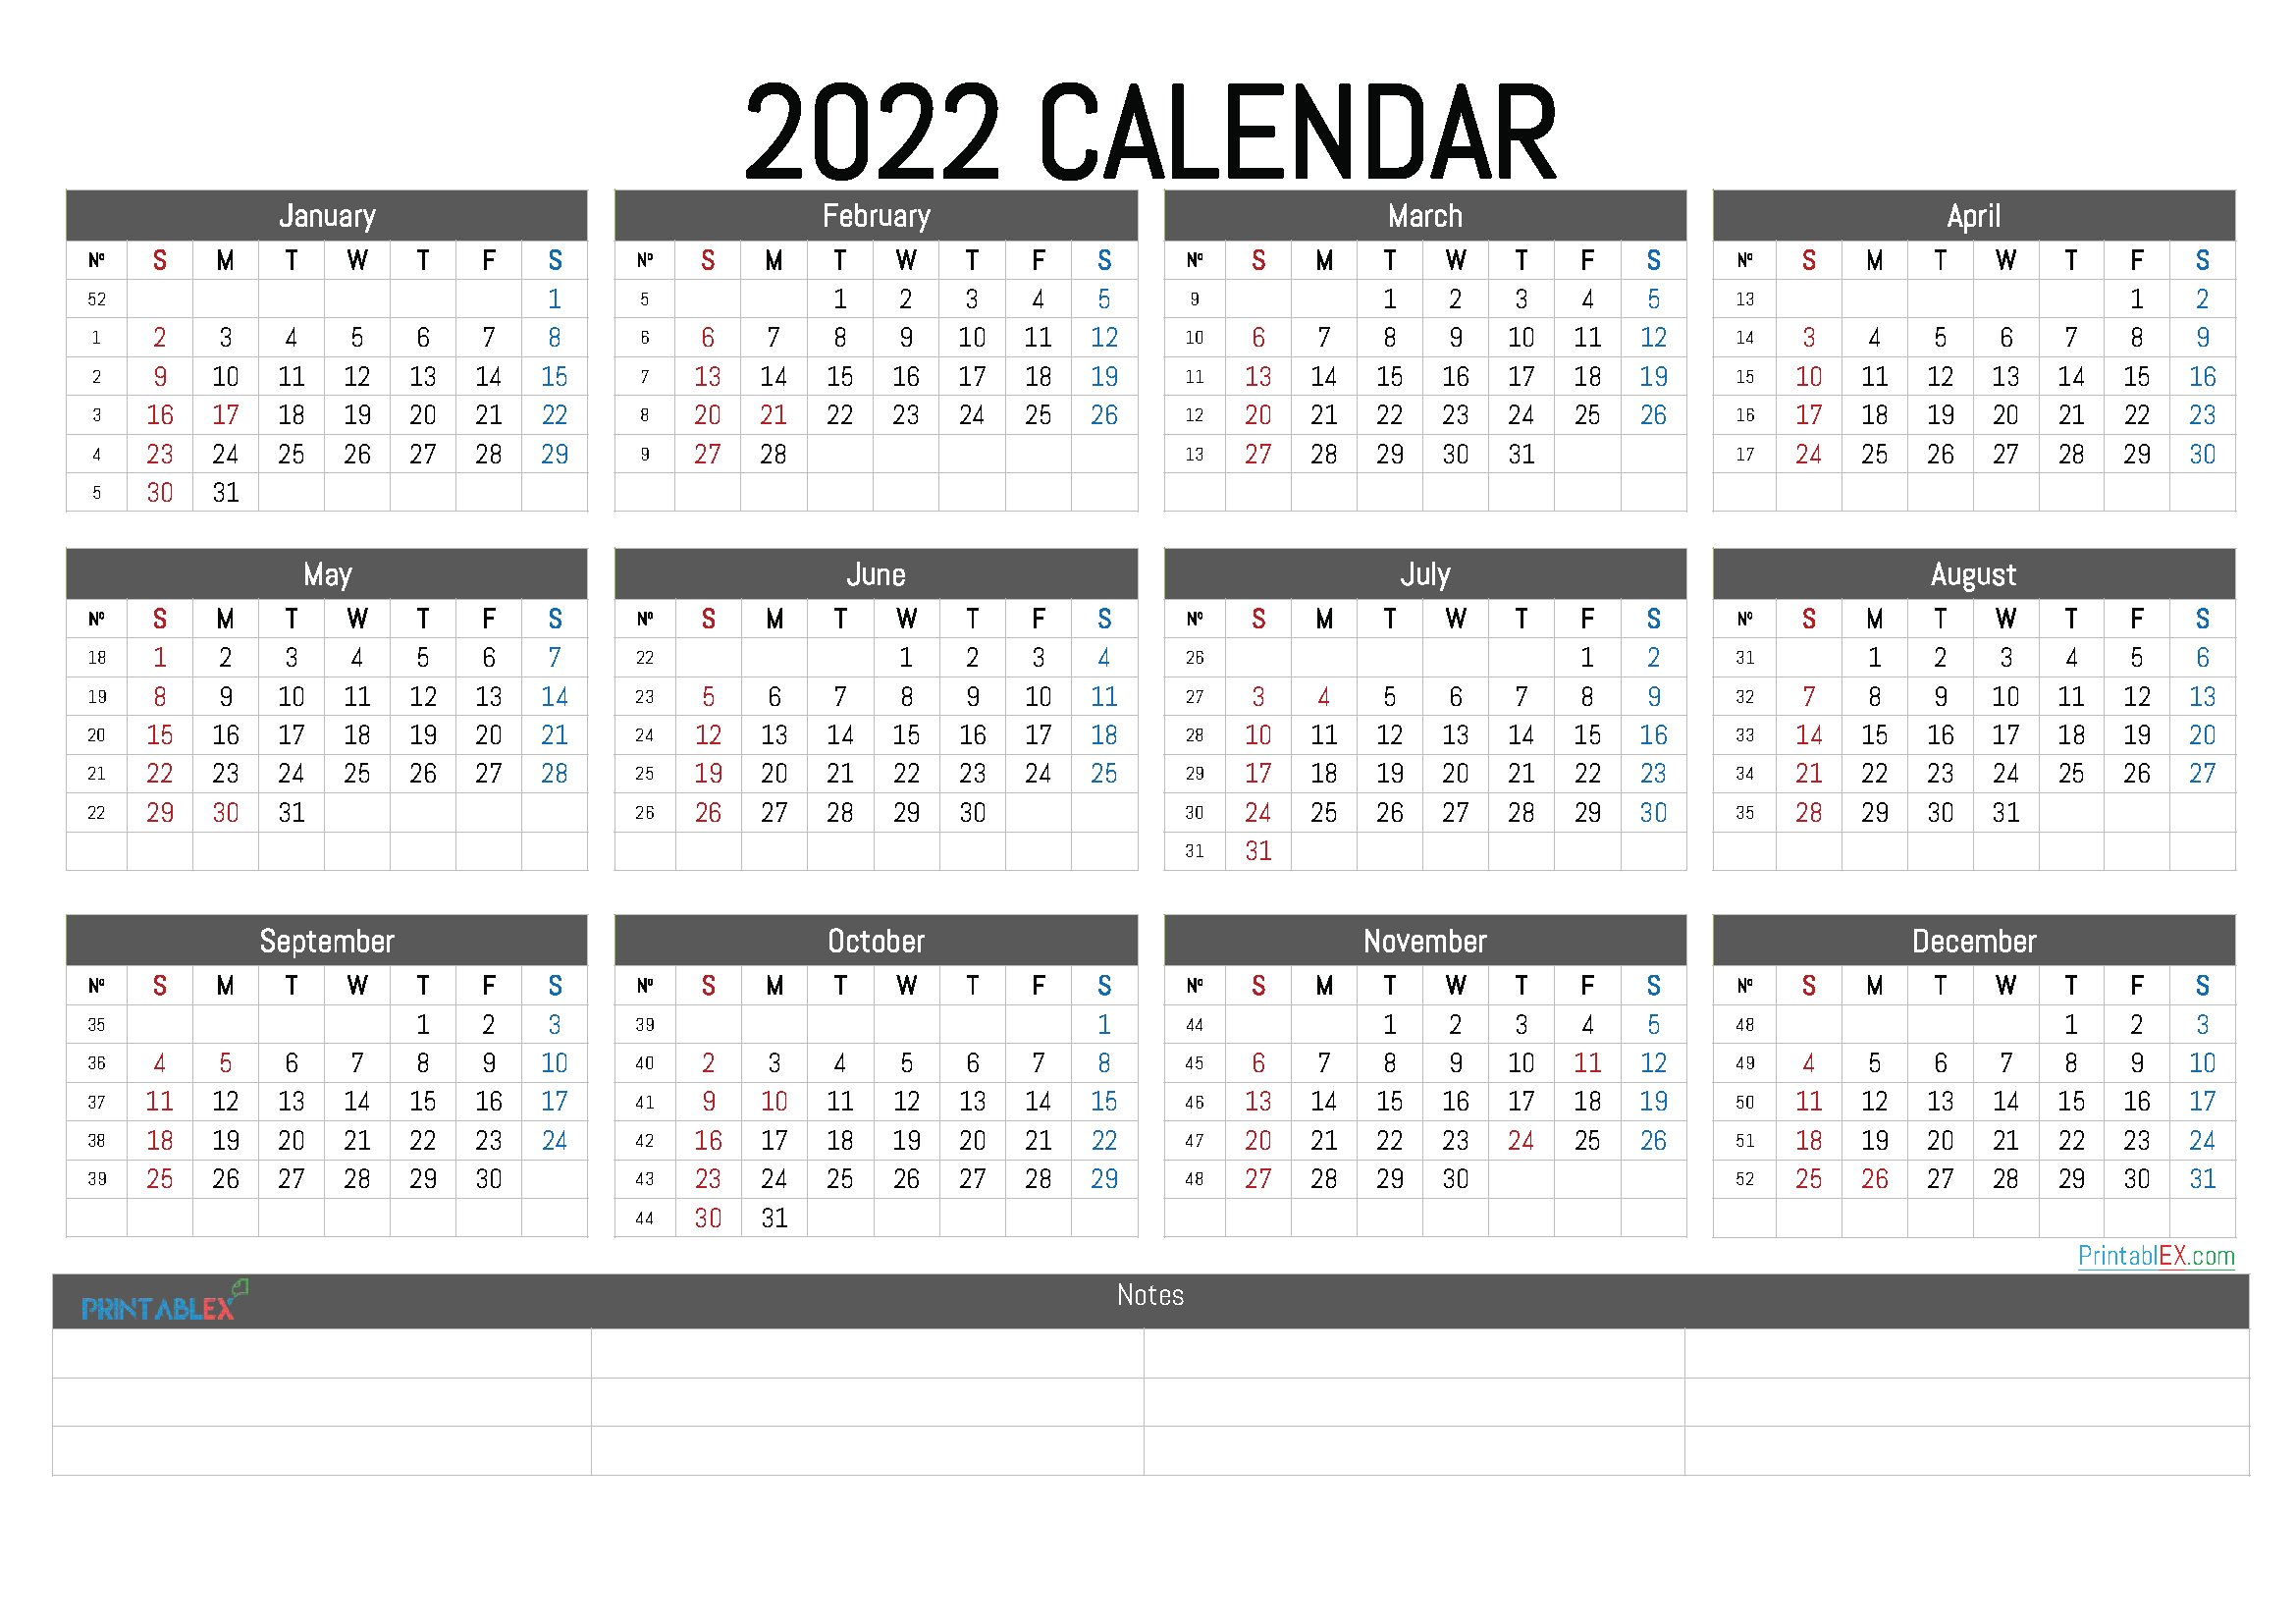 Free Printable 2022 Calendar by Month (Font: acme)